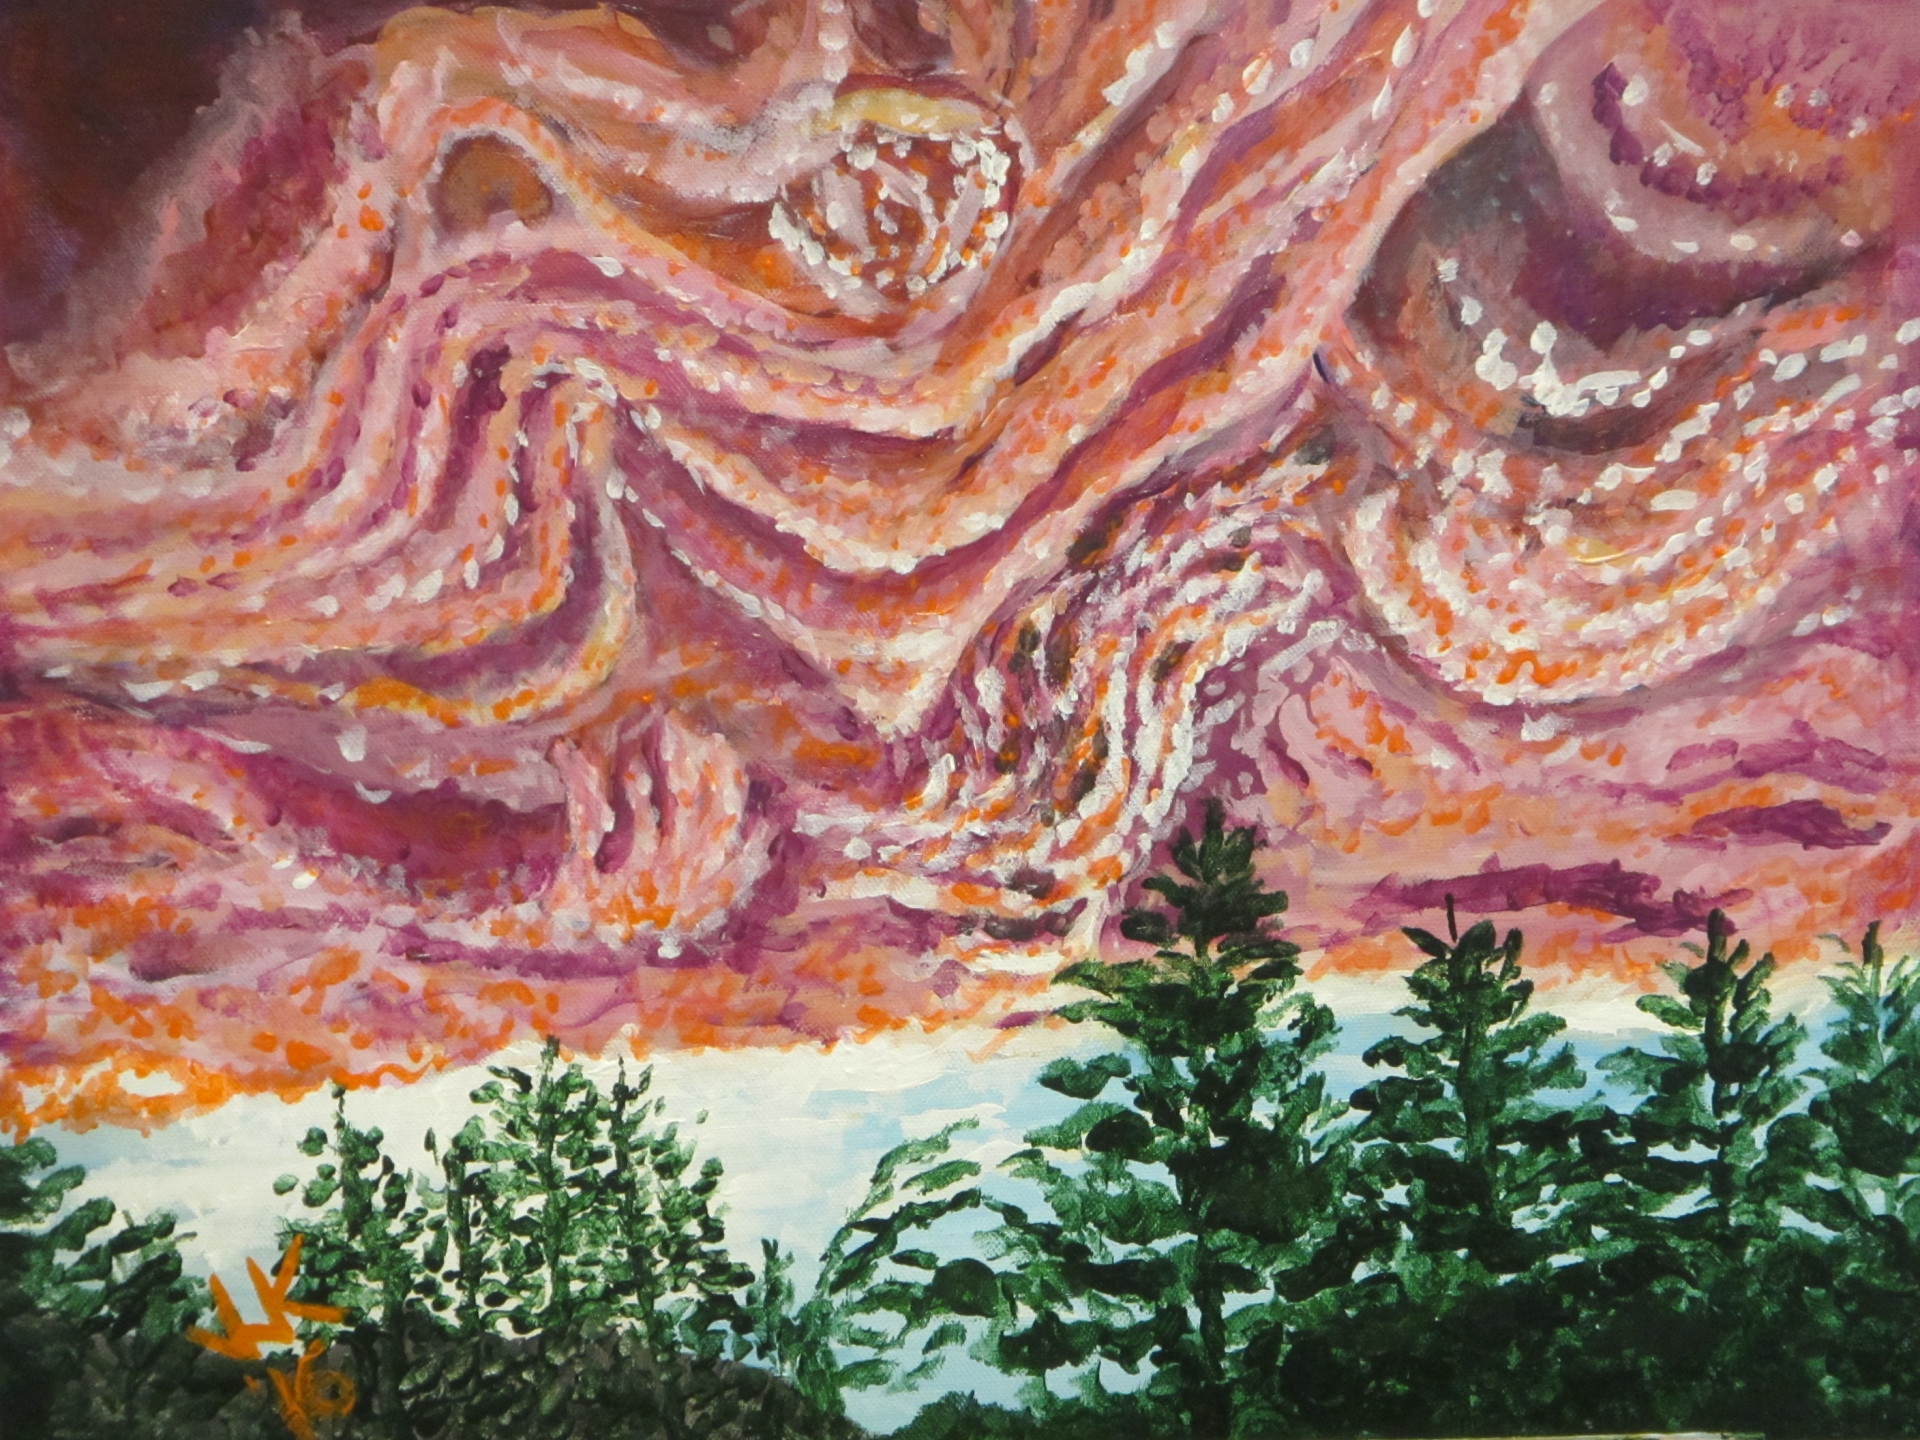 Acrylic on canvas impressionist painting of an unusual cloud formation.